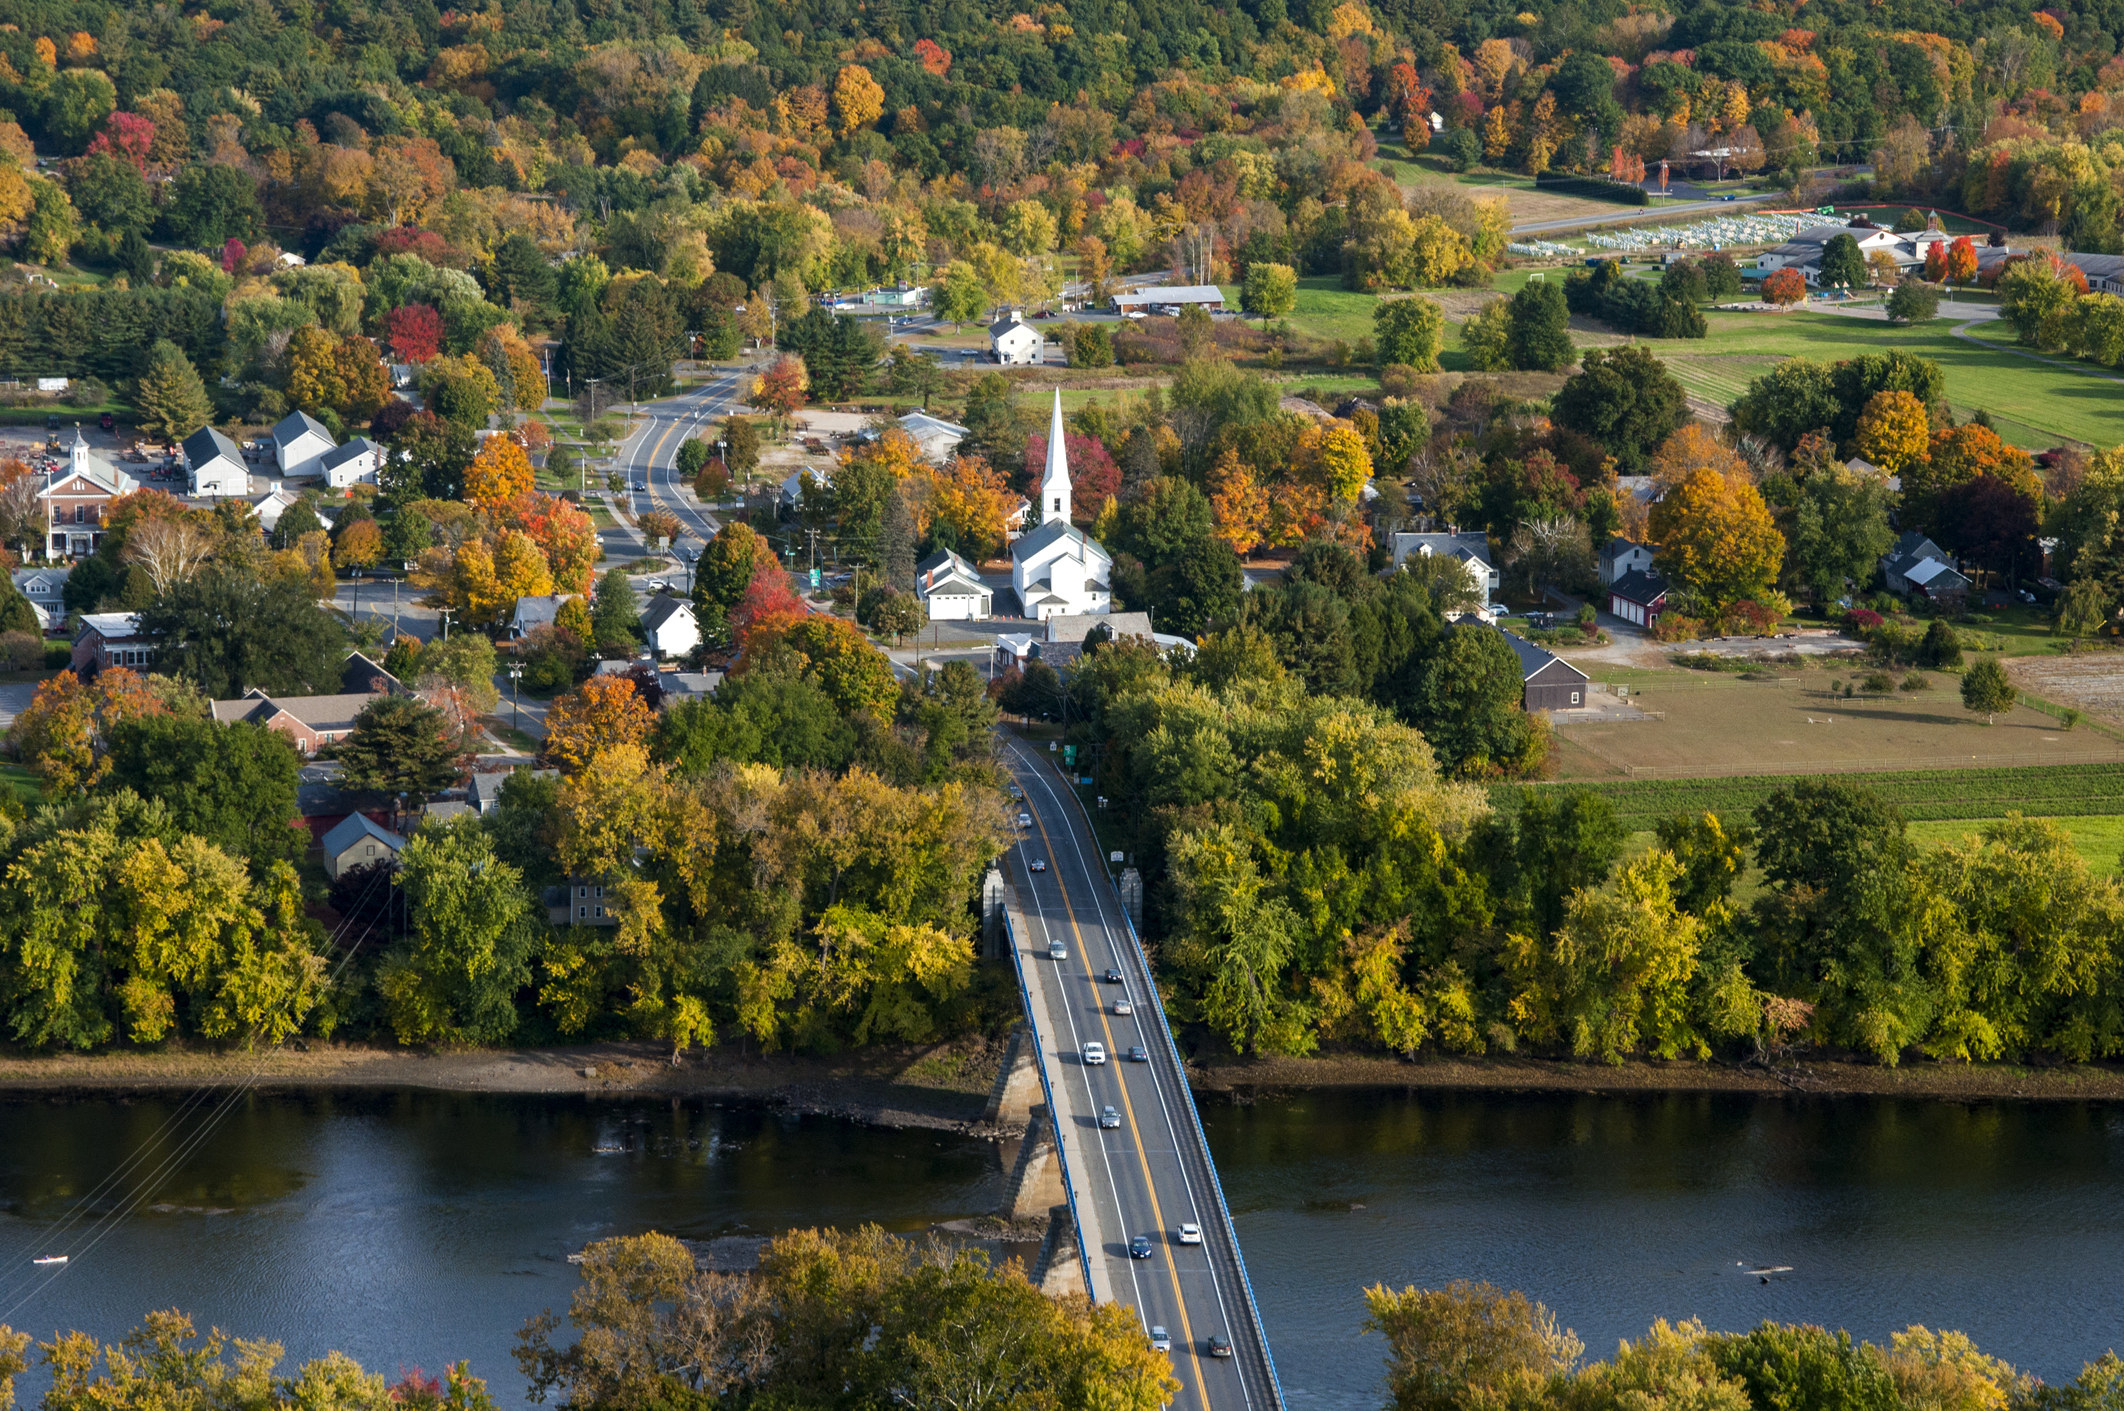 A drone shot of Mount Sugarloaf State Reservation with a bridge over the water and fall foliage beyond